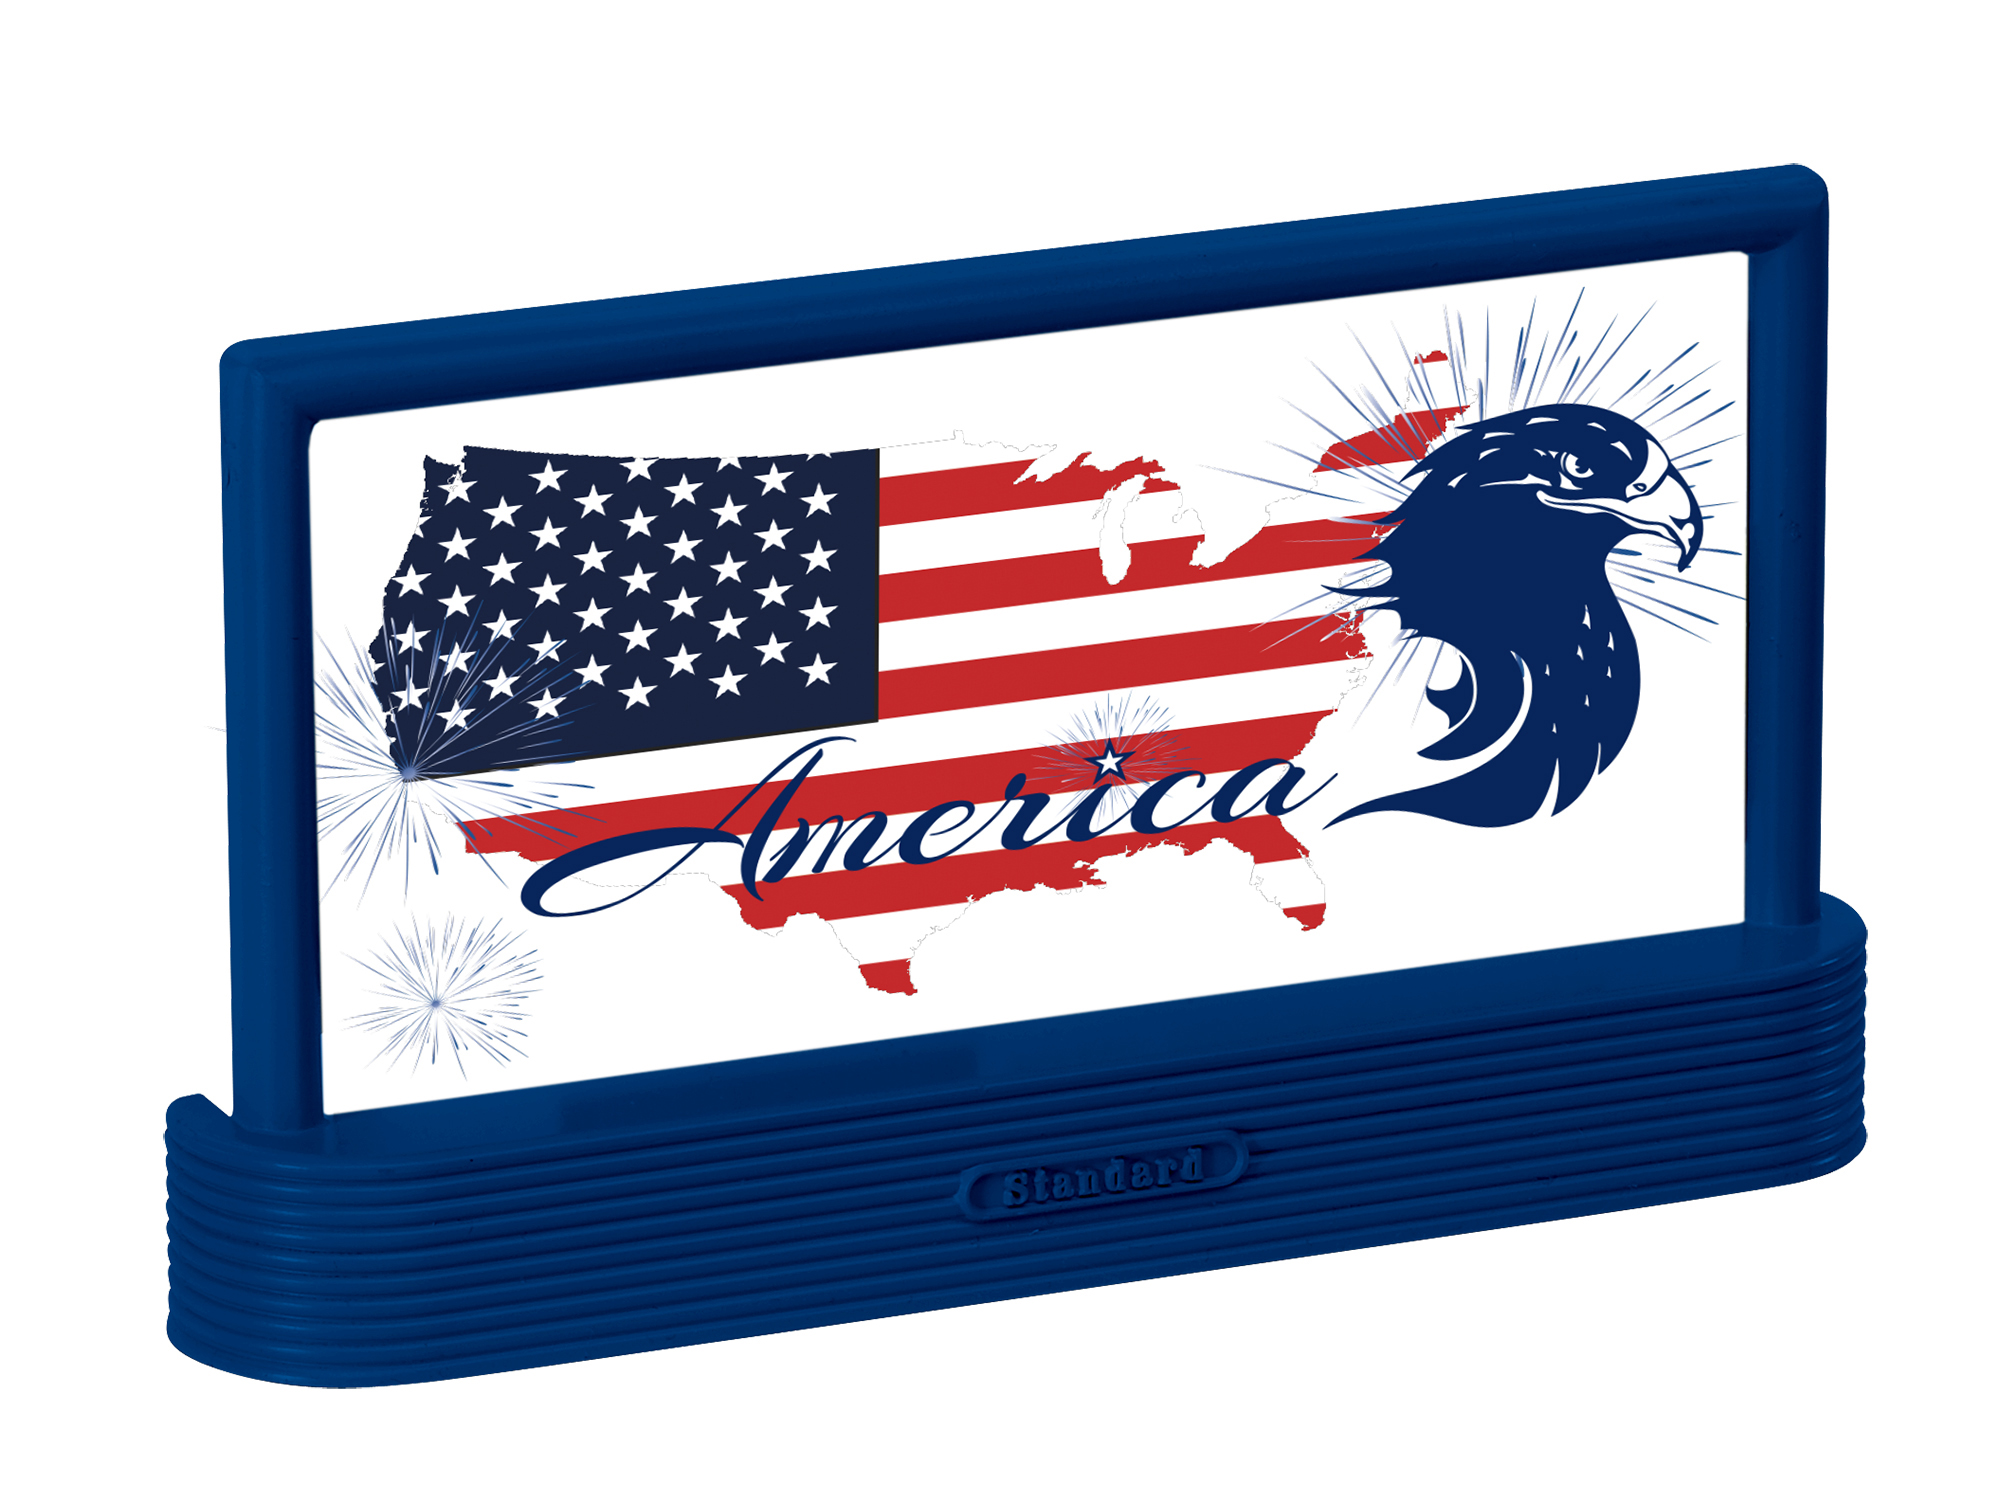 Stars & Stripes Billboard 3-pack - 'America' image